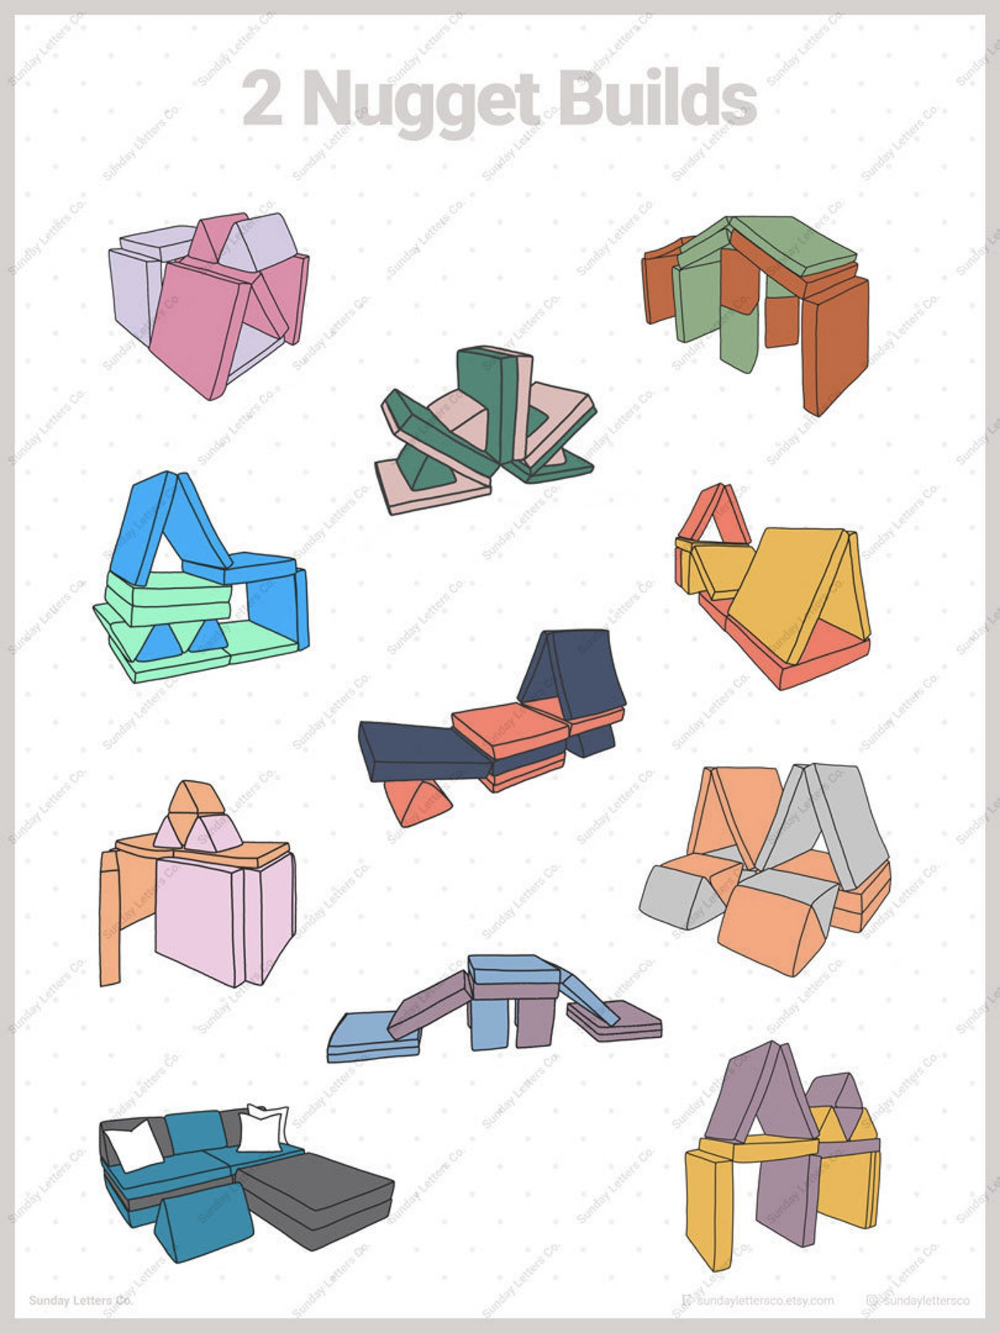 2 Nugget Builds Nugget Couch Ideas Minimalistic Poster ...